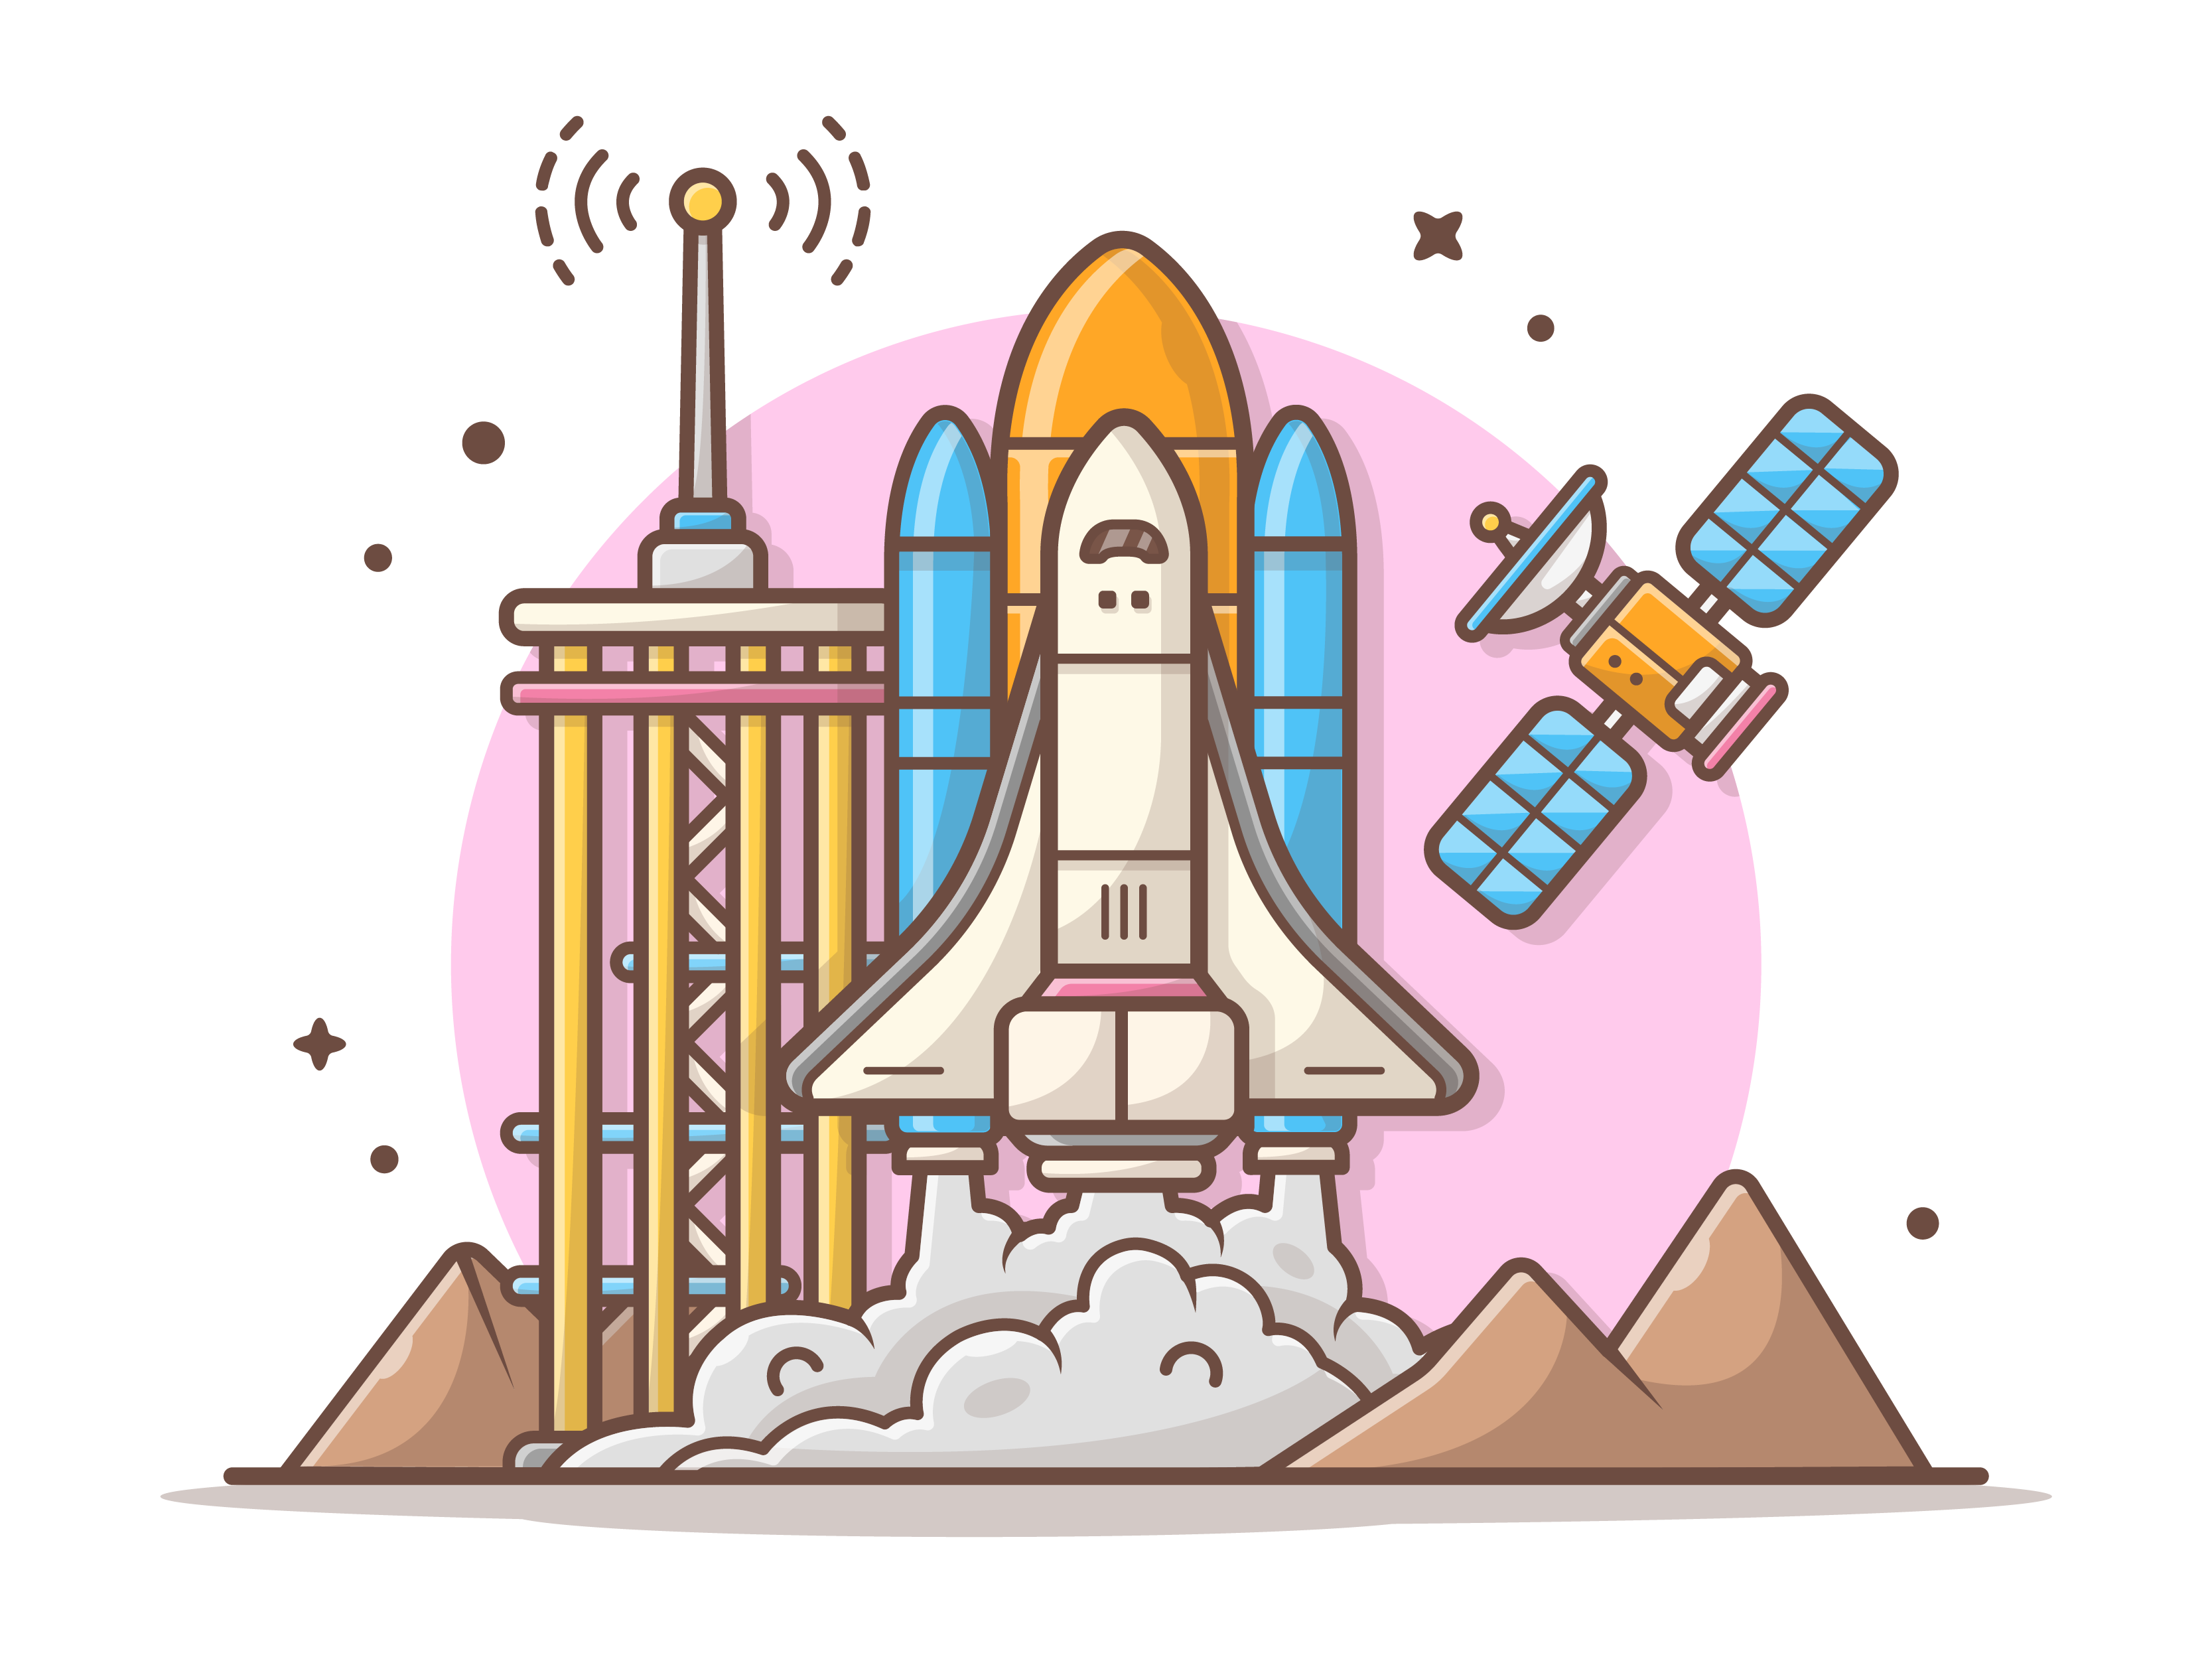 Space shuttle with satellite and mountain2 dribbble 07